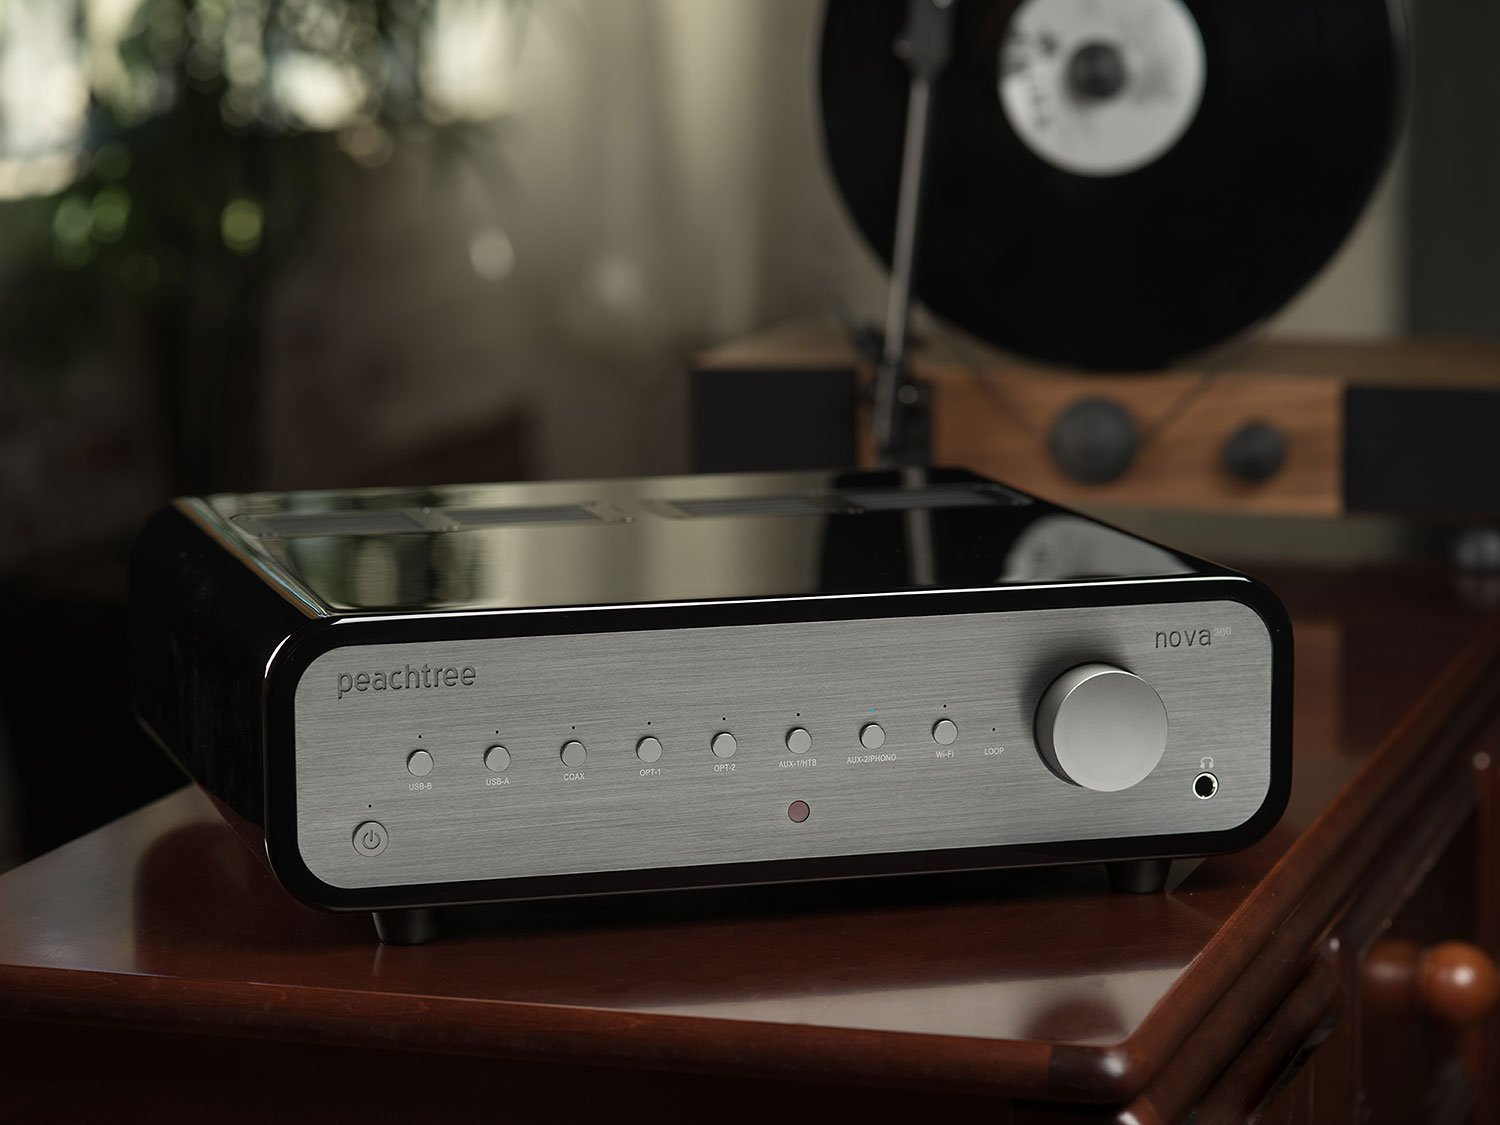 Amazon.com: Peachtree Audio nova300 Integrated Amplifier with DAC (Piano Black): Home Audio & Theater